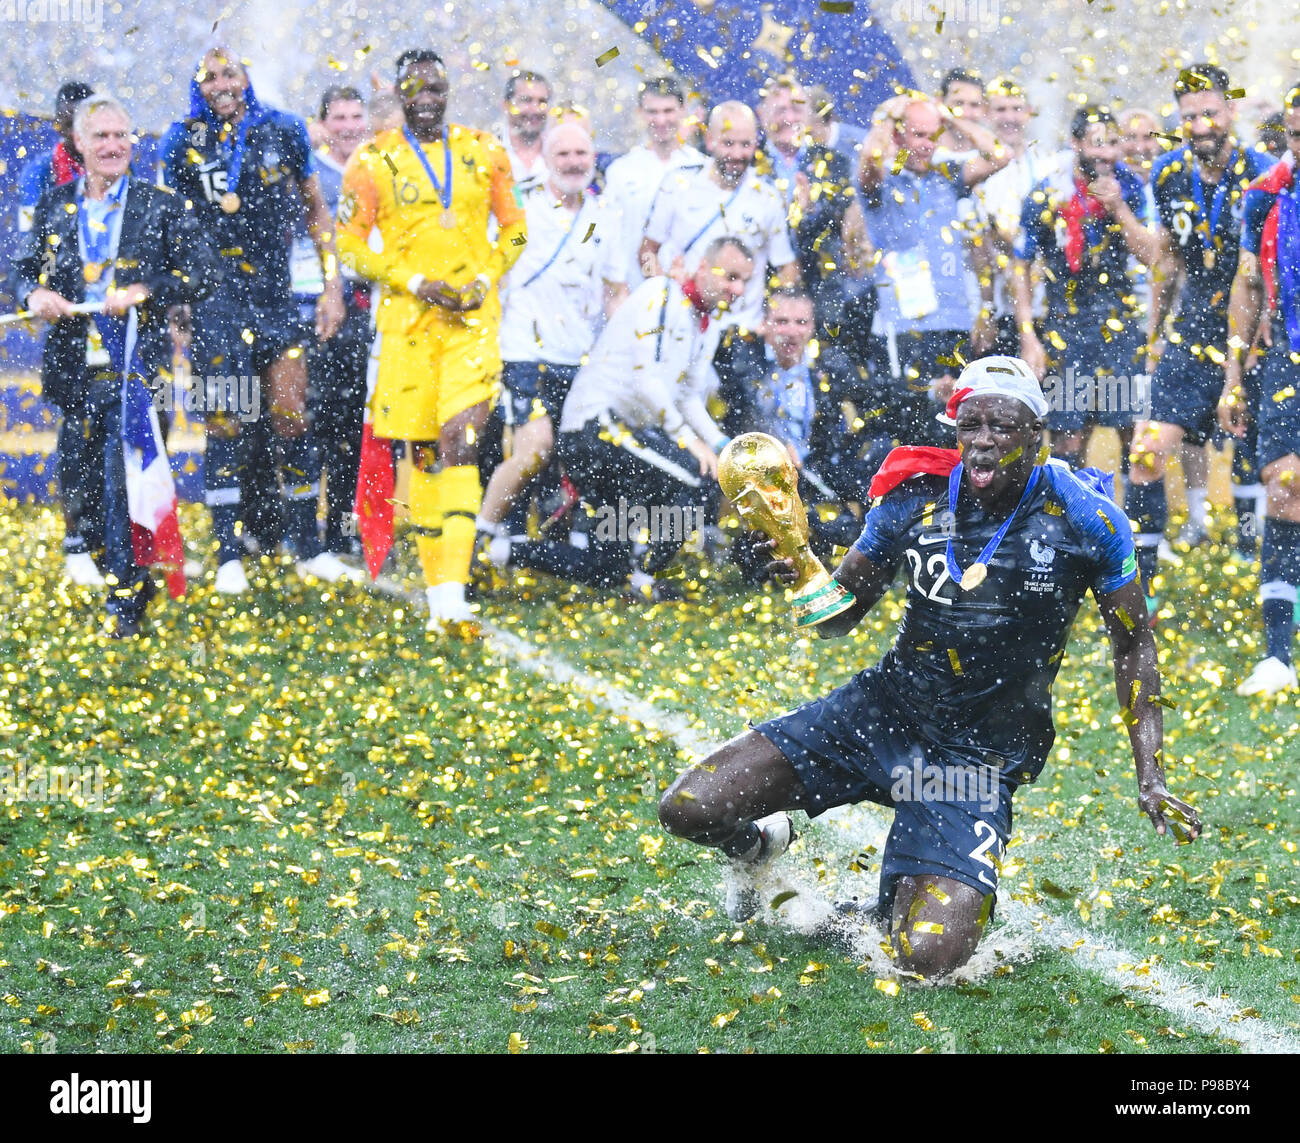 Moscow, Russland. 15th July, 2018. Winning Ceremony: Benjamin Mendy (France) cheers with the World Cup trophy after the handover. GES/Football/World Championship 2018 Russia, Final: France- Croatia, 15.07.2018 GES/Soccer/Football, World Cup 2018 Russia, Final: France vs. Croatia, Moscow, July 15, 2018 | usage worldwide Credit: dpa/Alamy Live News - Stock Image